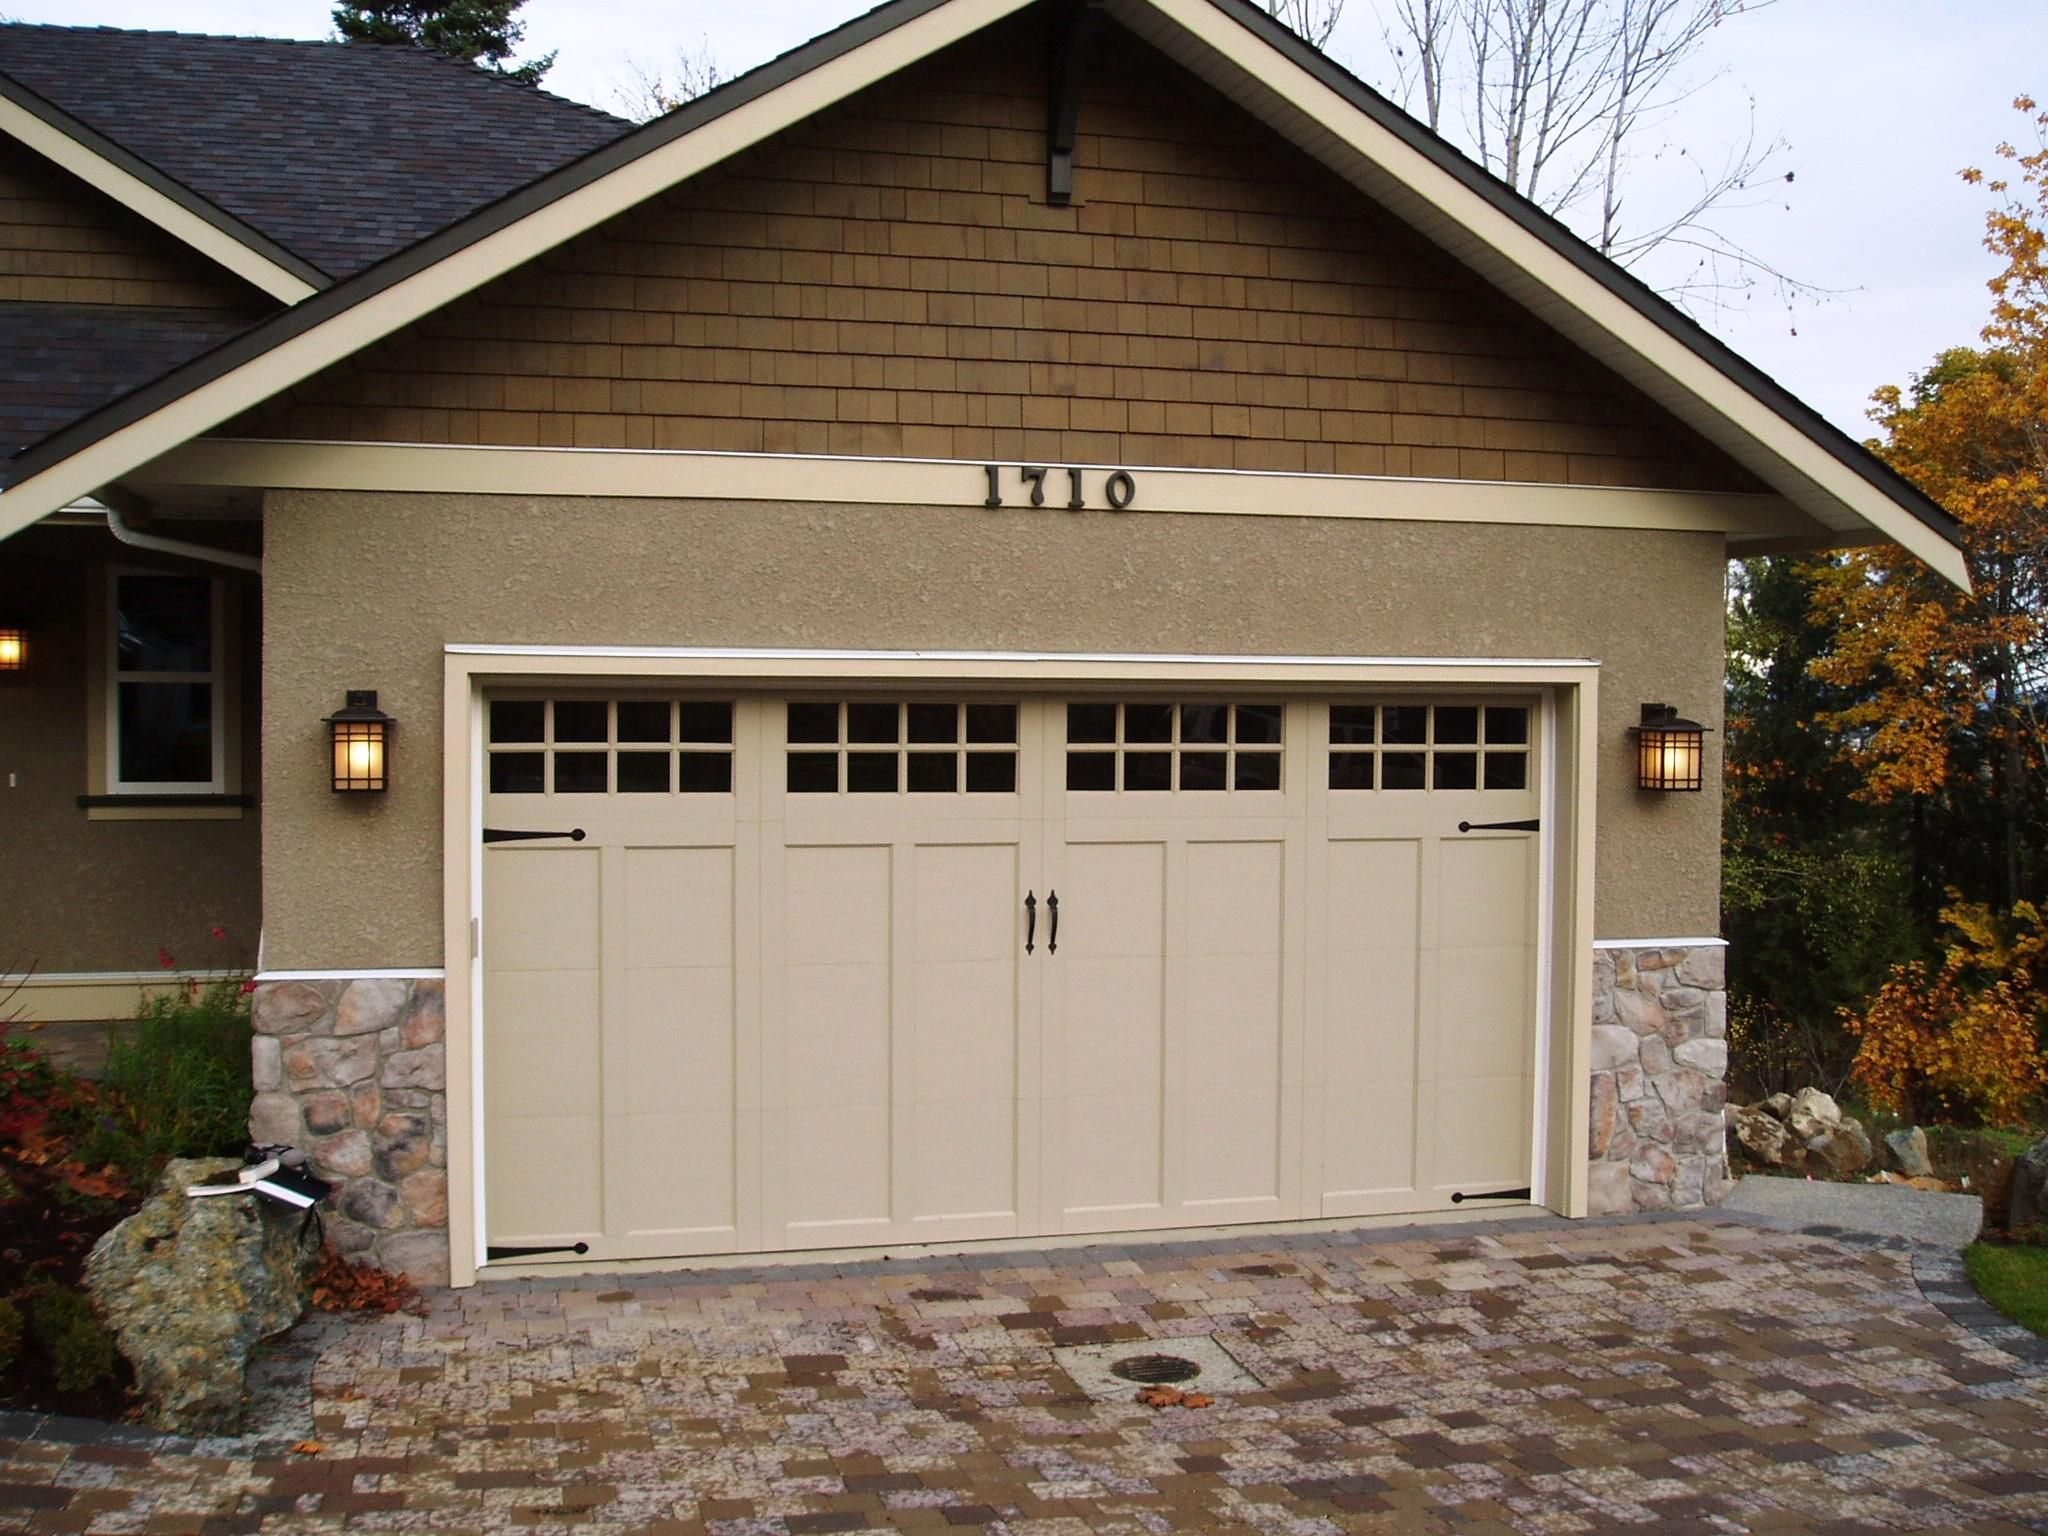 Double Wide Garage Door - The simple panel design of this clopay coachman collection carriage style garage door blends perfectly with